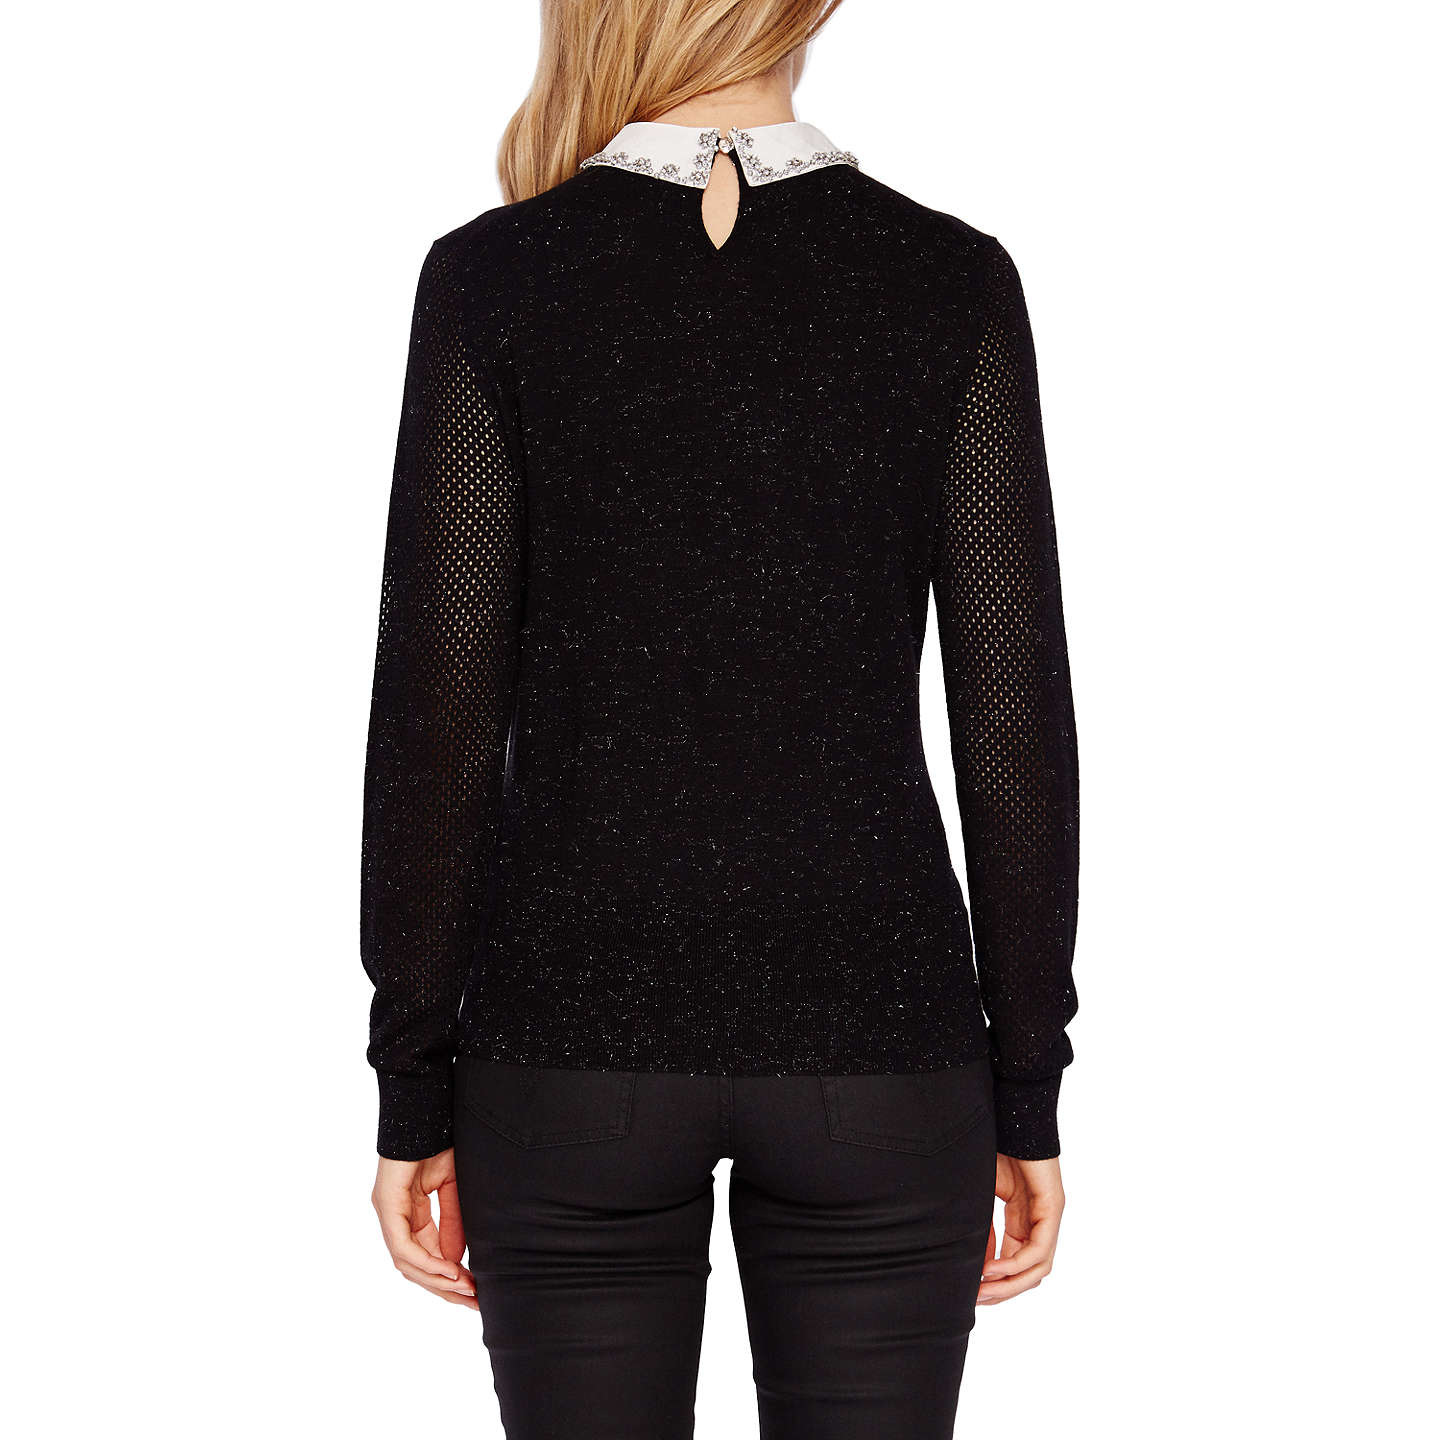 BuyTed Baker Helin Embellished Collar Sparkle Jumper, Black, 6 Online at johnlewis.com